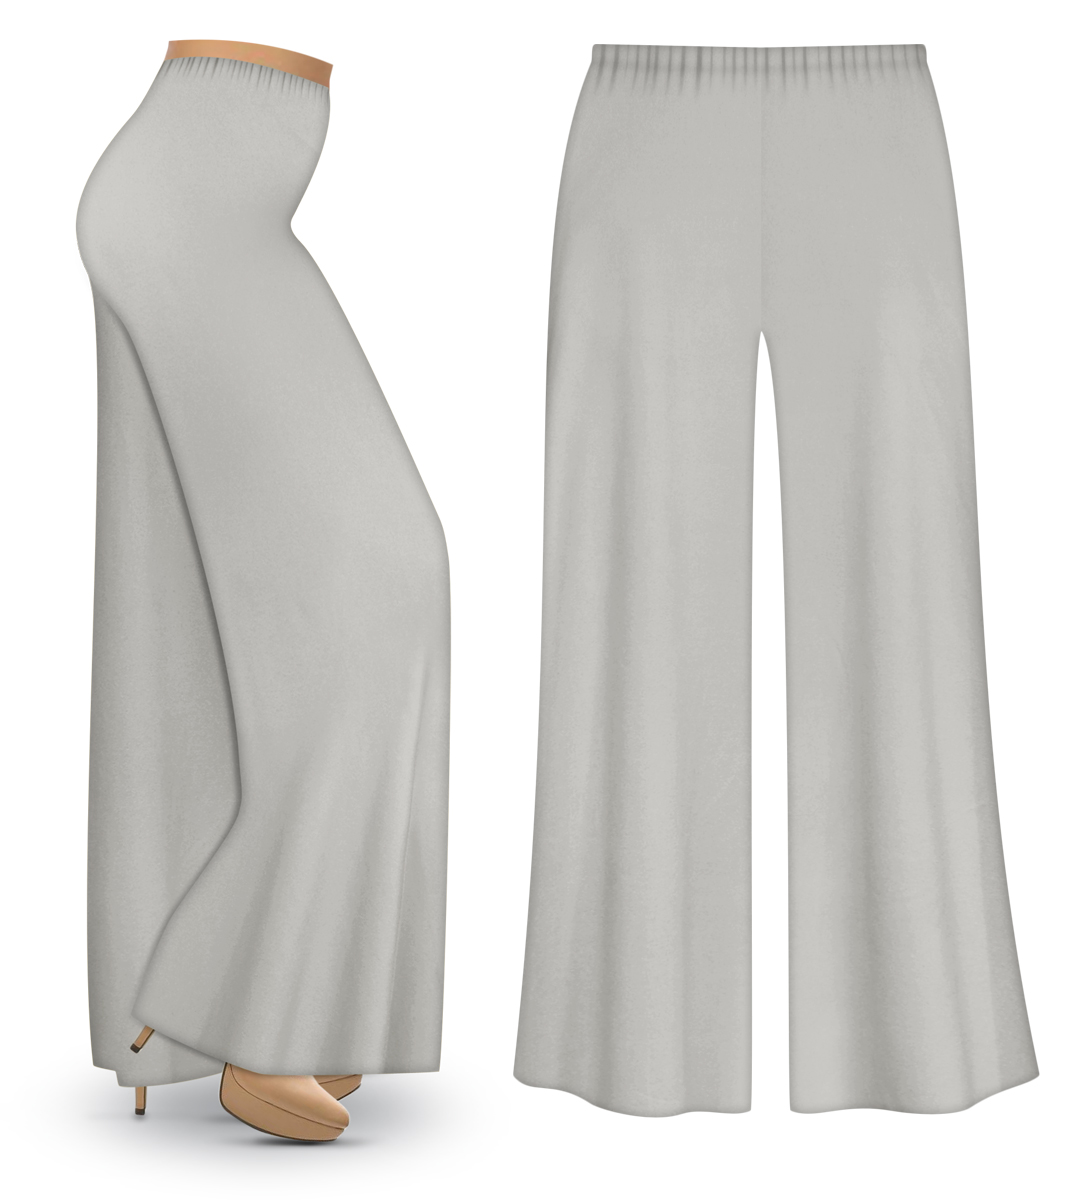 CLEARANCE! Silver Gray Wide Leg Palazzo Pants in Slinky, Velvet or ...